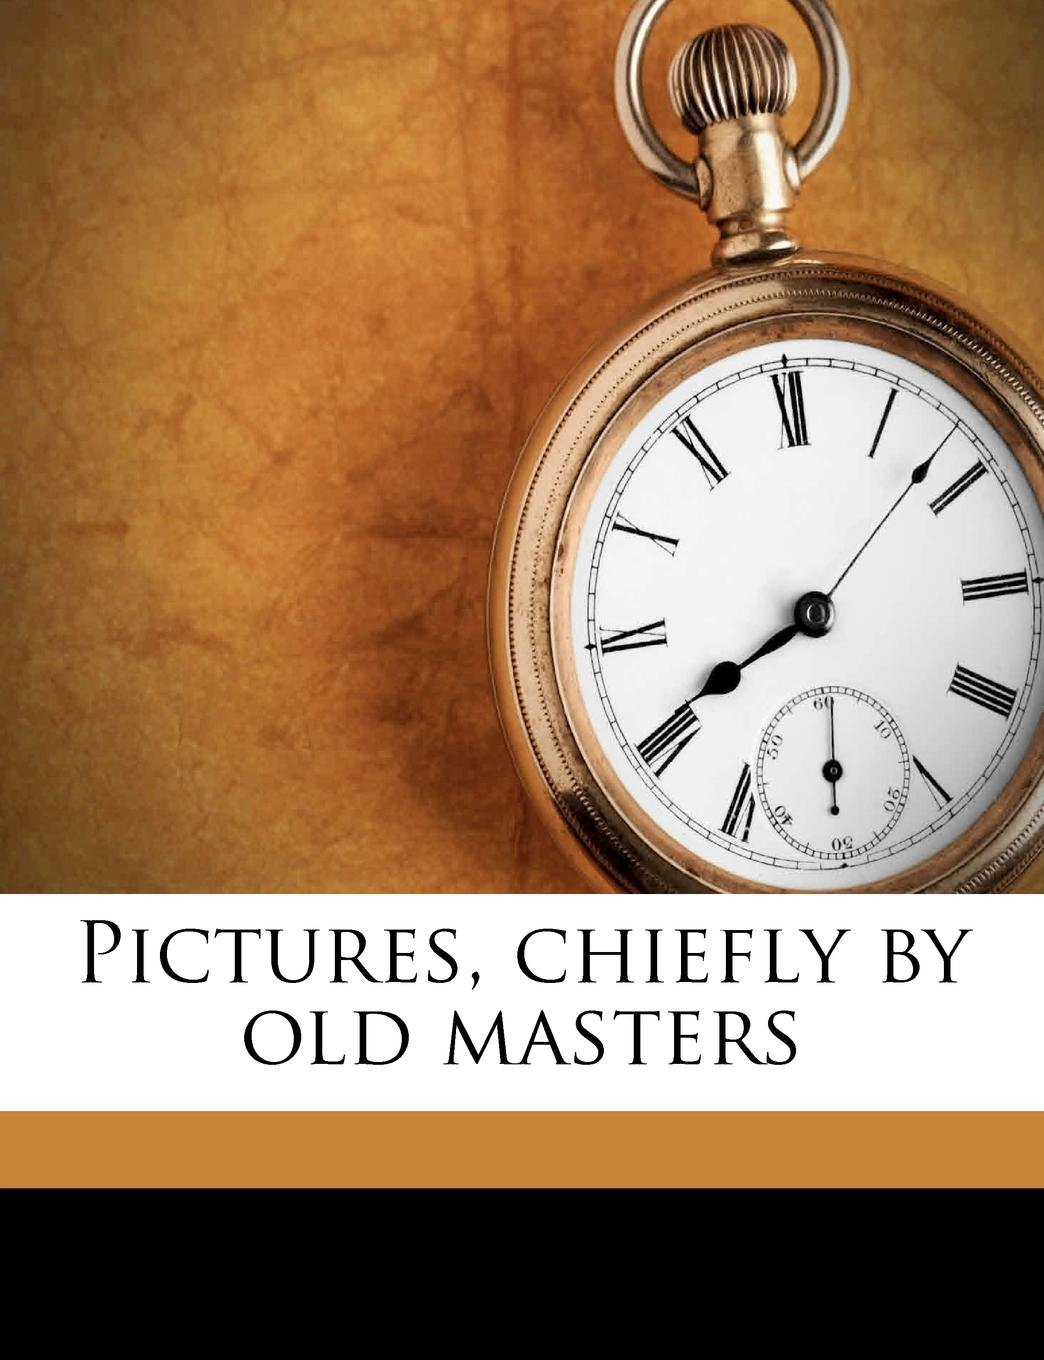 Pictures, chiefly by old masters ebook